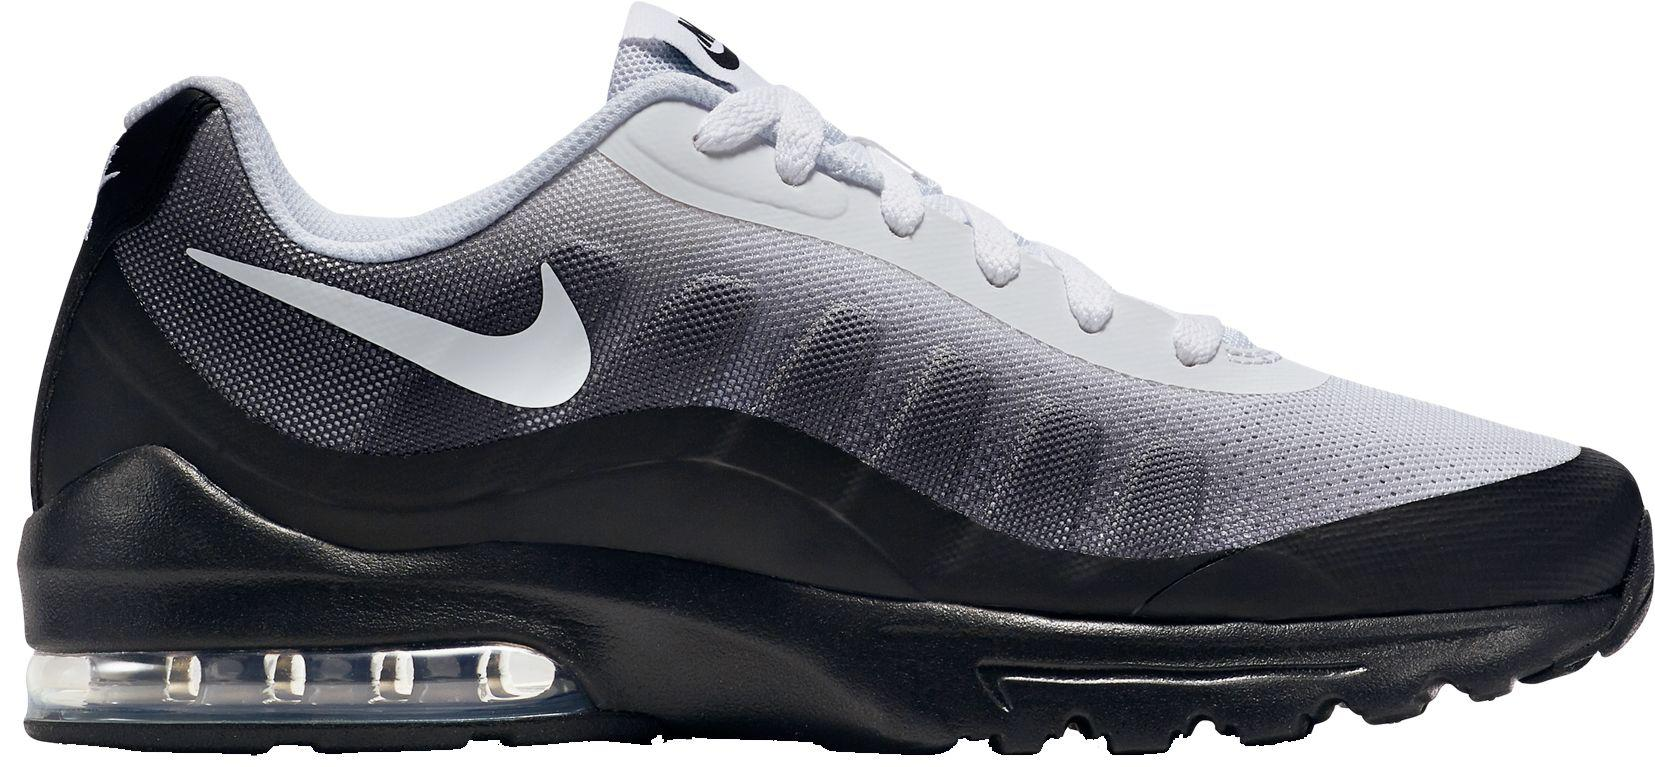 the best attitude d087e 43315 ... official store lyst nike air max invigor prt shoes in black for men  6a289 20125